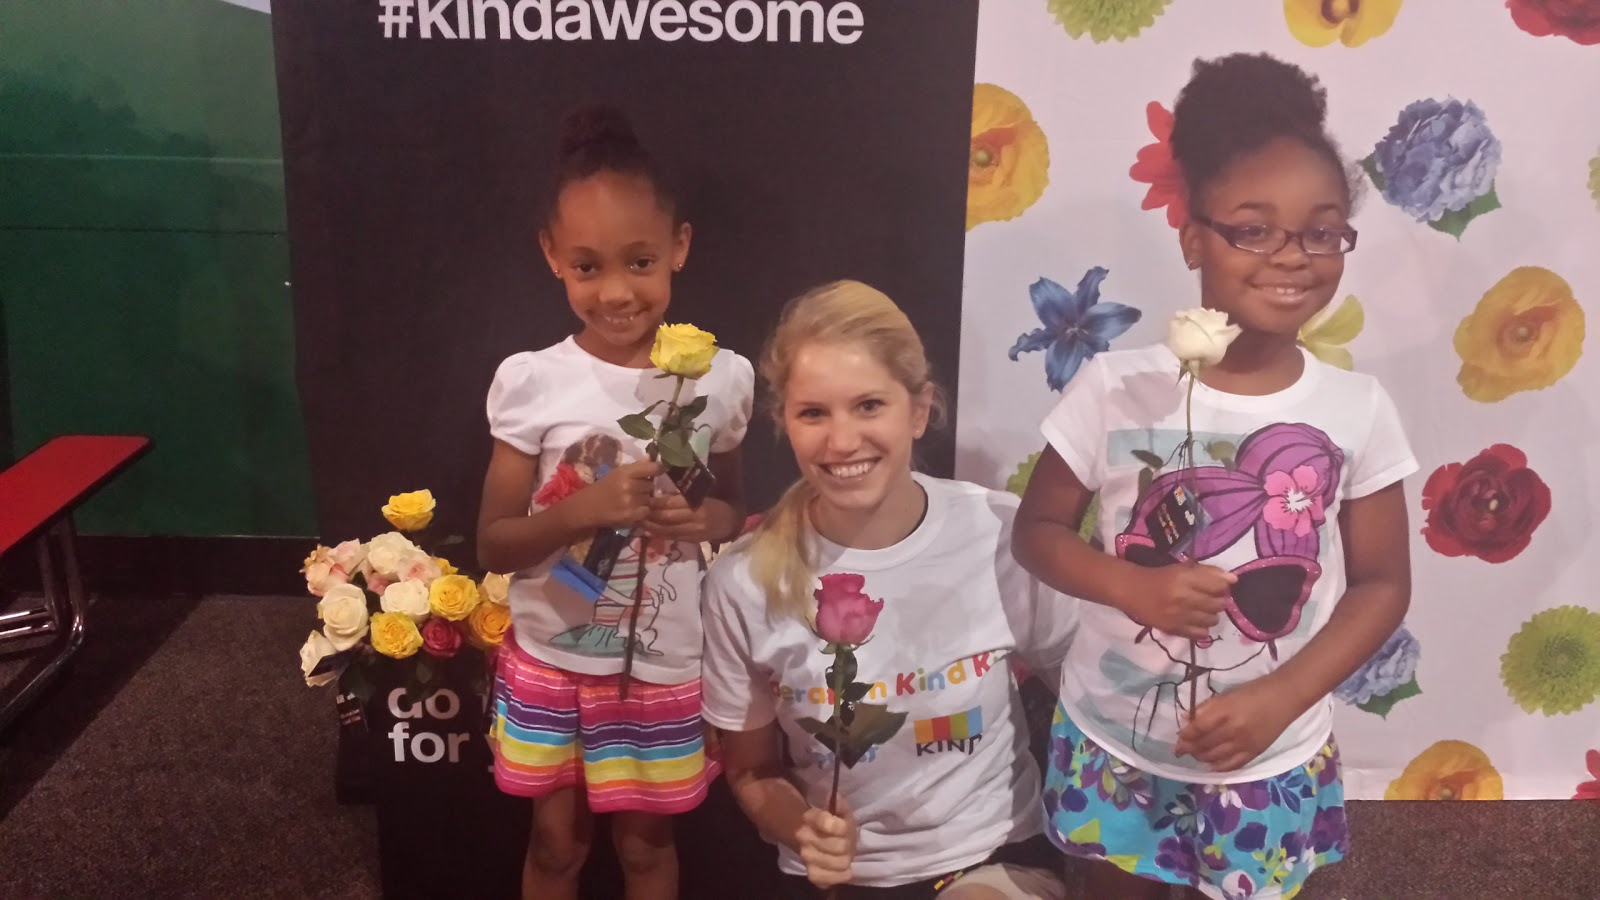 #OperationKindKids Event Recap at The Children's Museum of Atlanta via ProductReviewMom.com